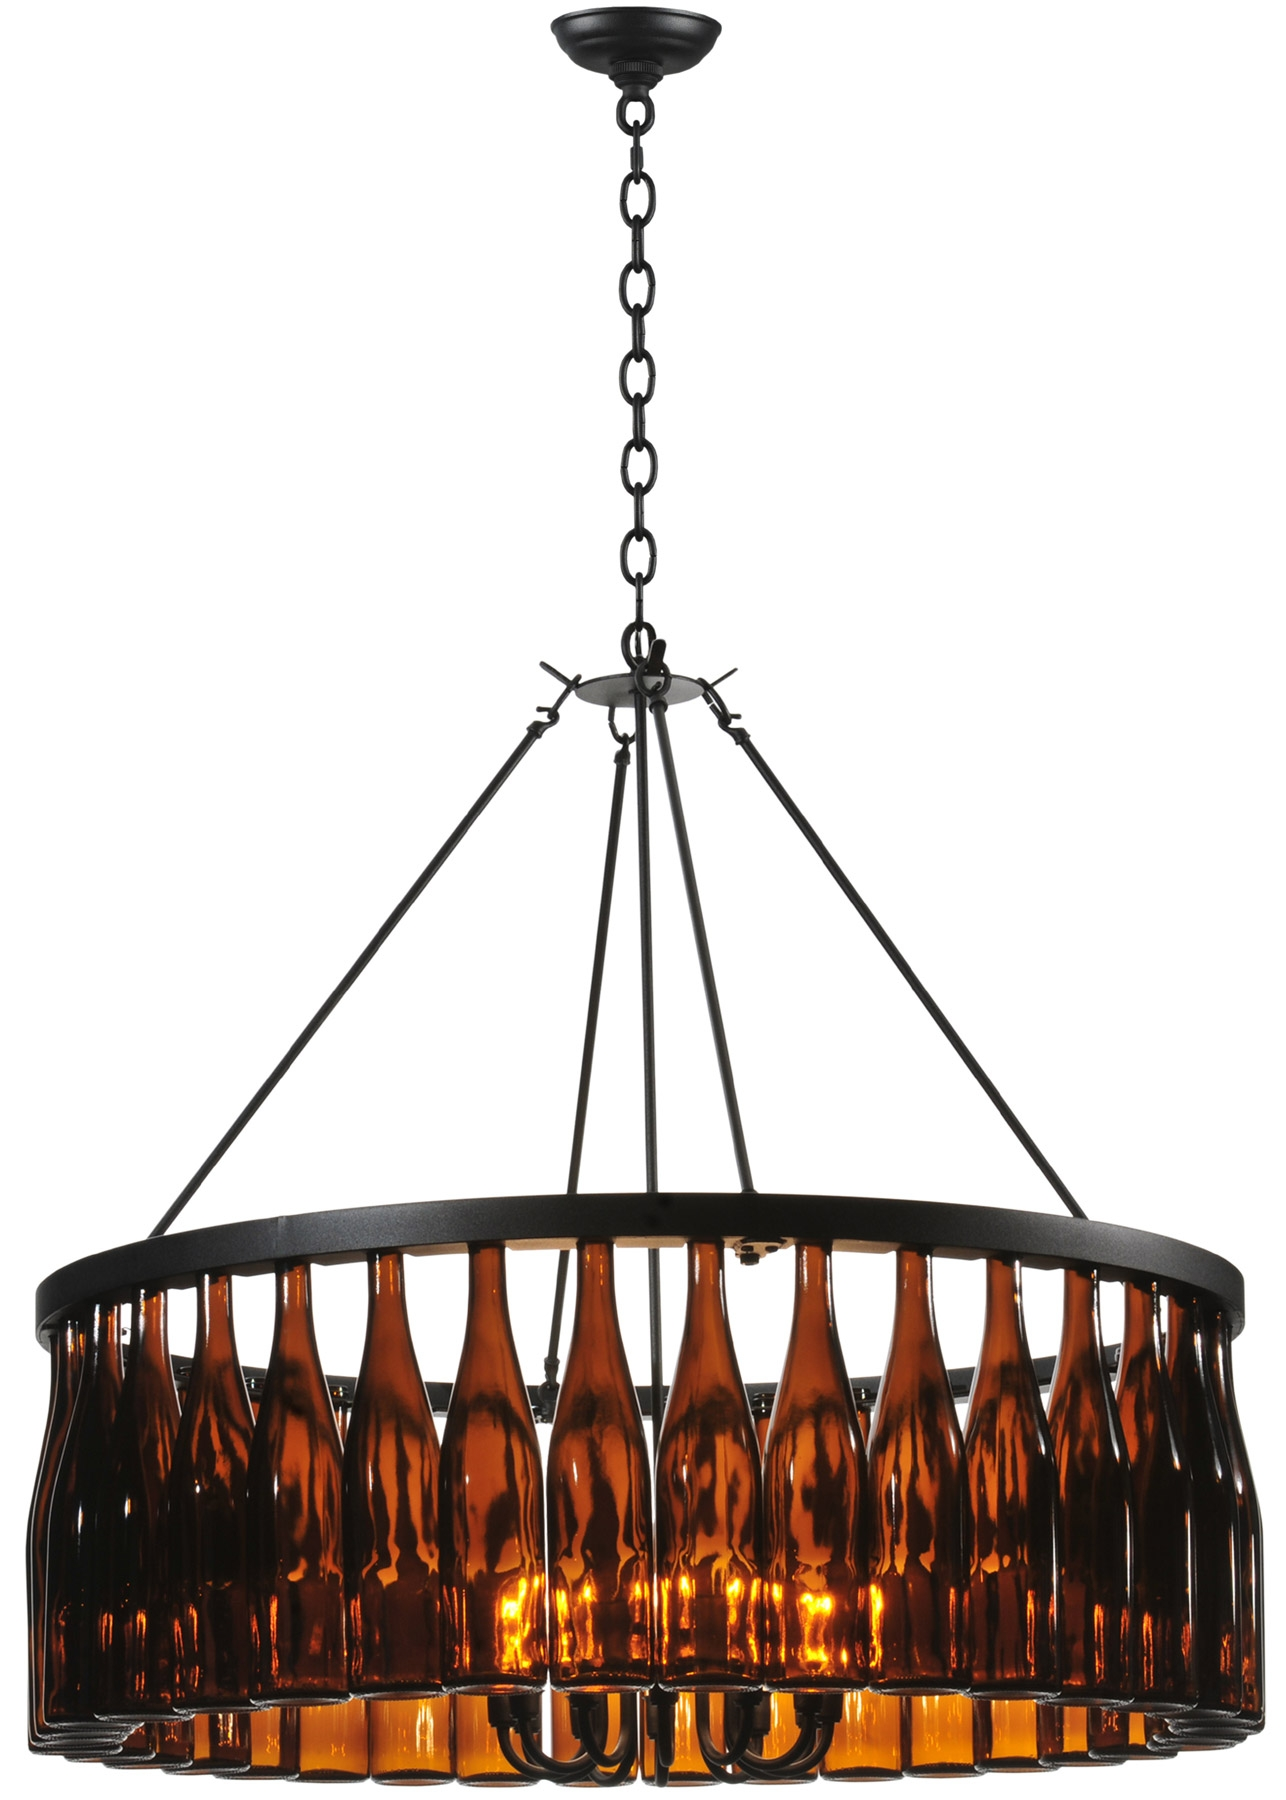 Chandelier Amazing Casual Chandeliers Marvellous Casual With Wayfair Chandeliers (Image 7 of 25)